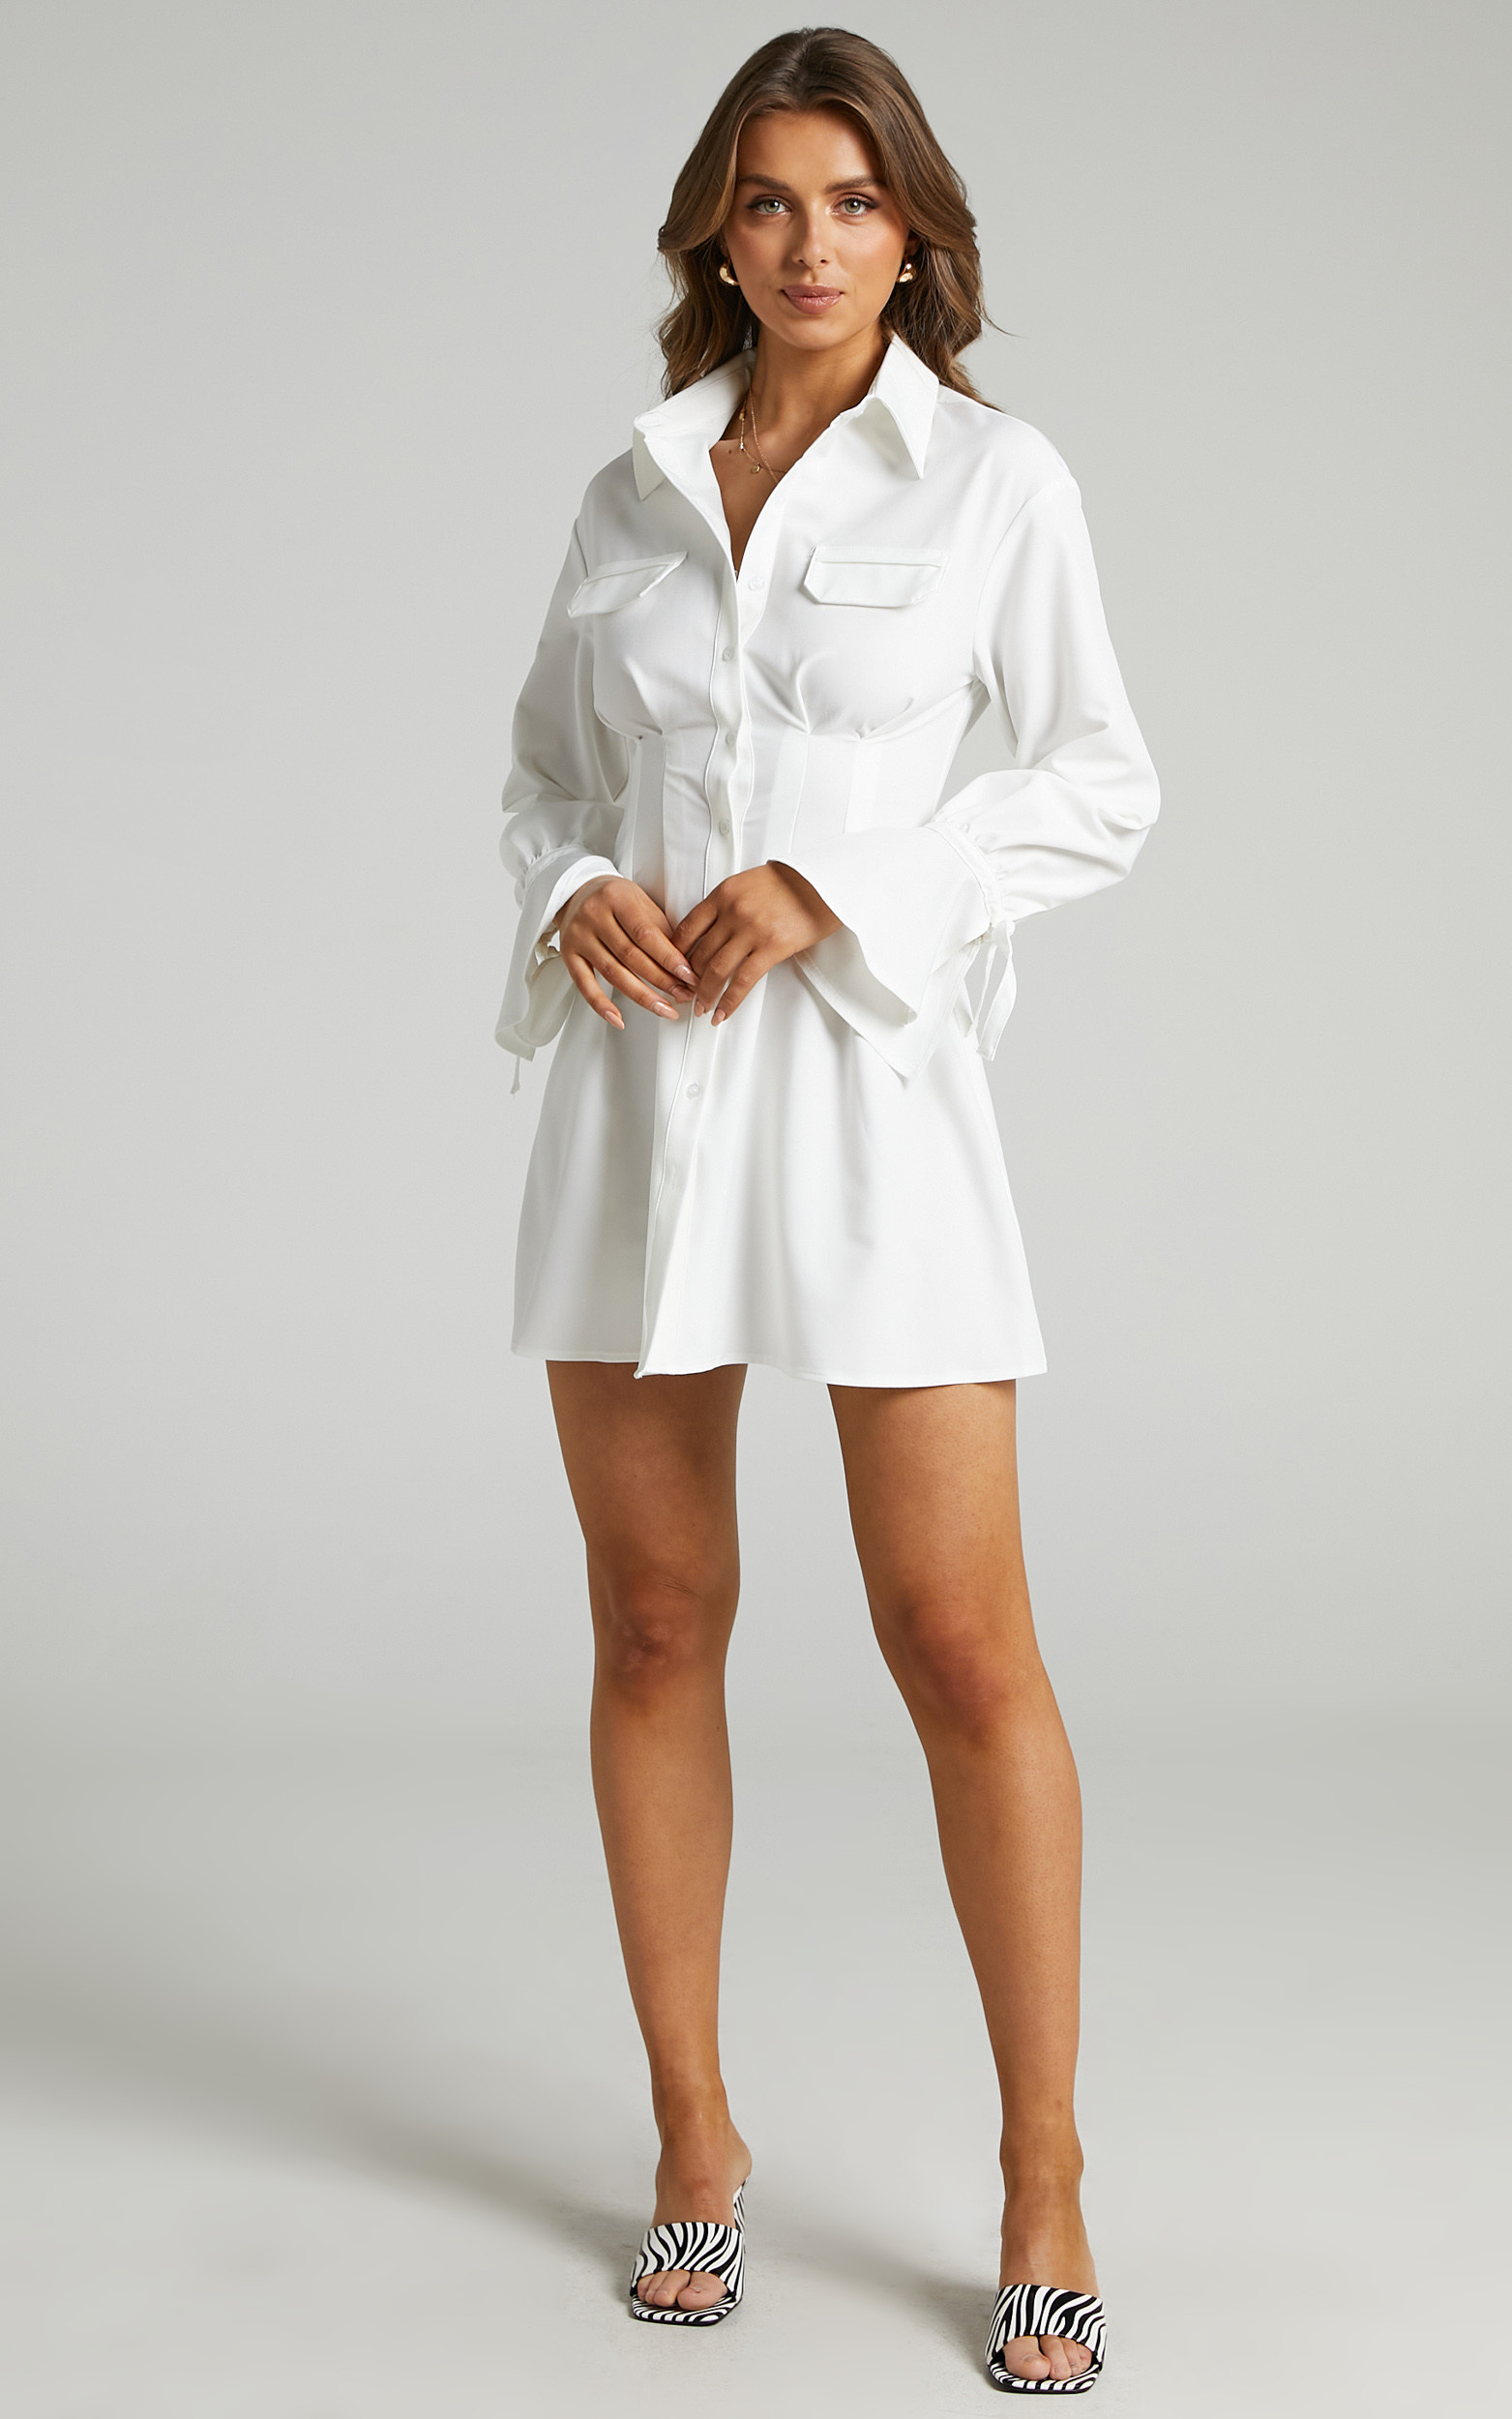 Romi Cuffed Long Sleeve Shirt Dress with Cinched Waist in White - 06, WHT1, hi-res image number null